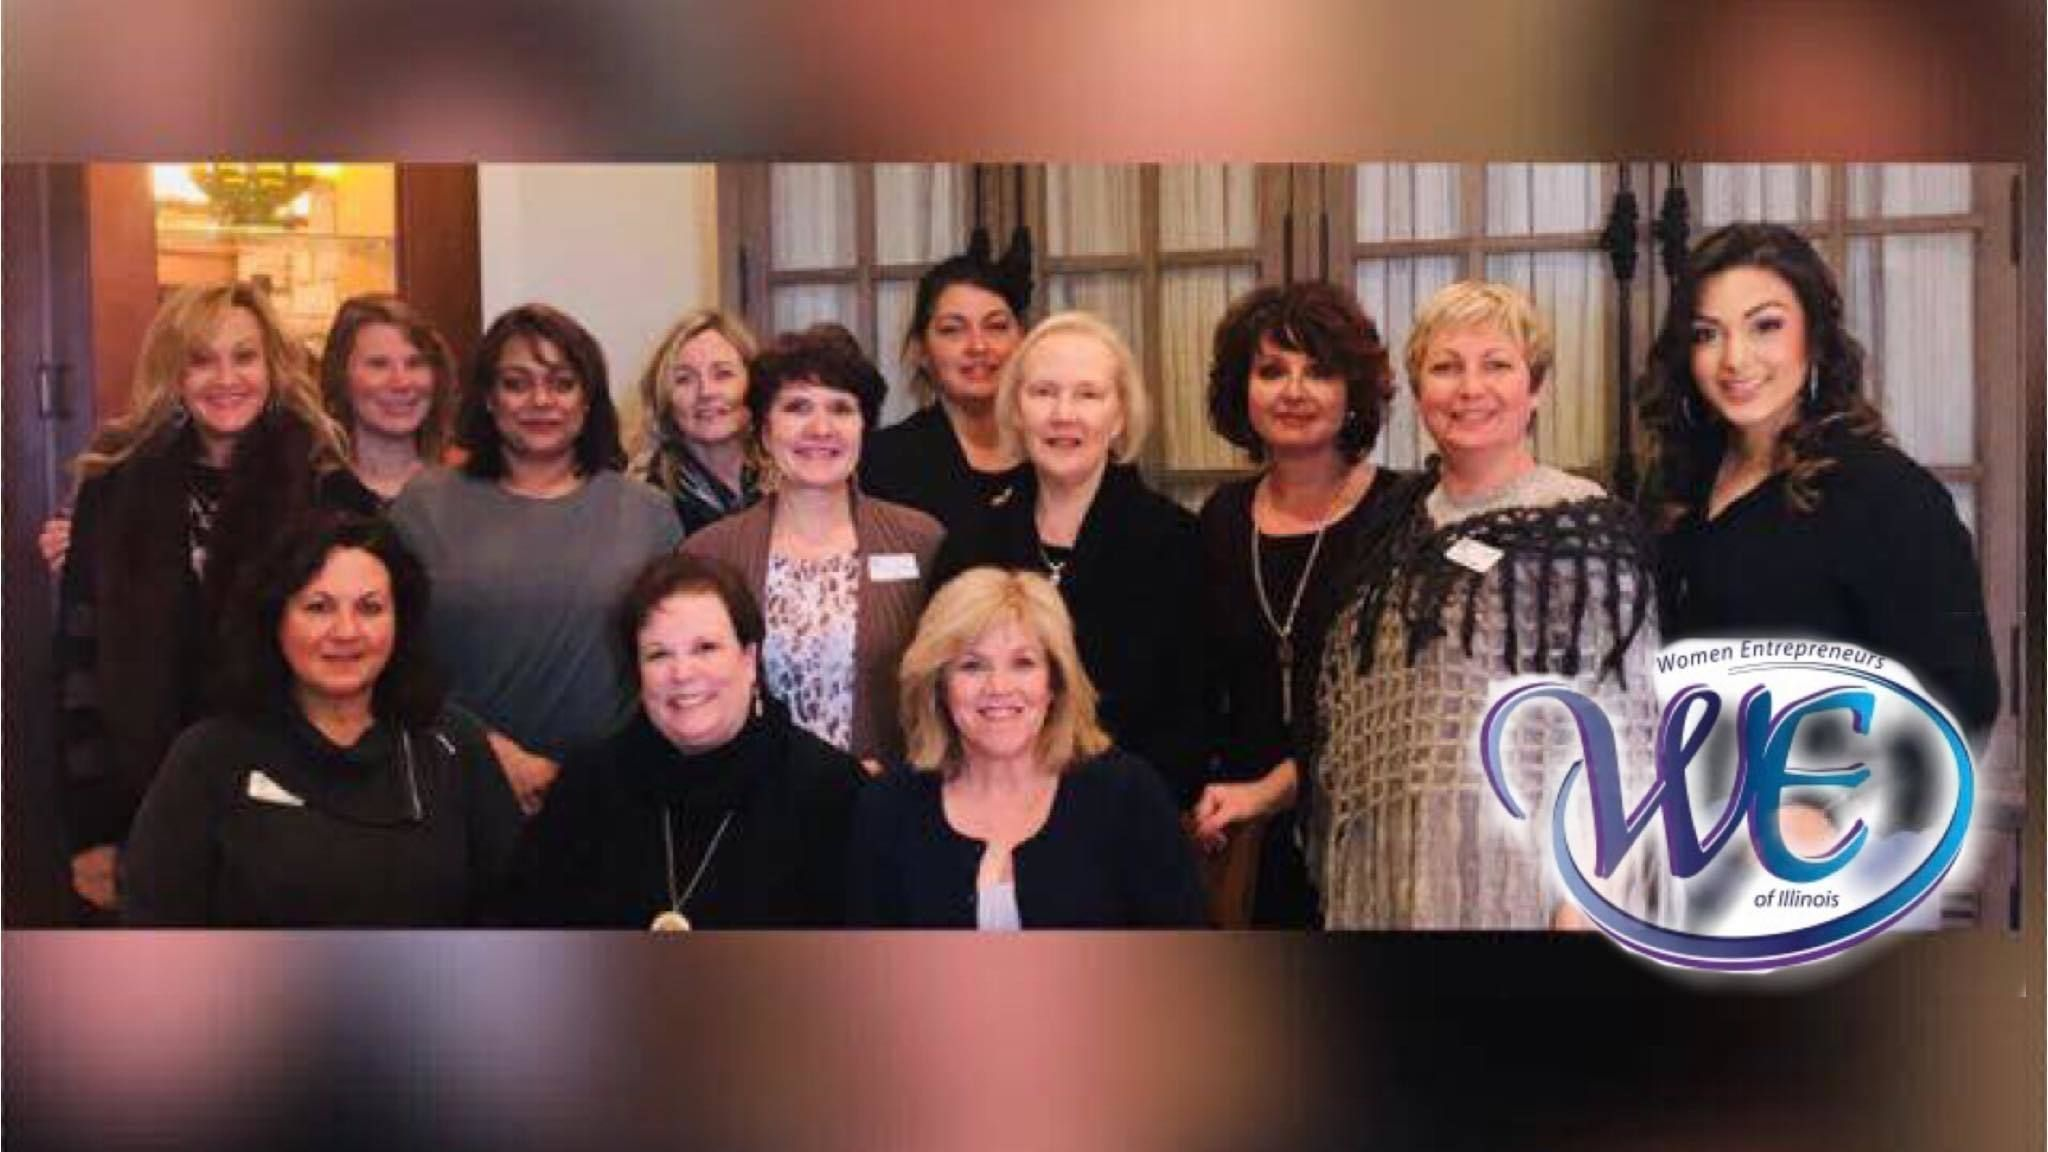 Women Entrepreneurs (WE) of IL-a Networking & Referral group